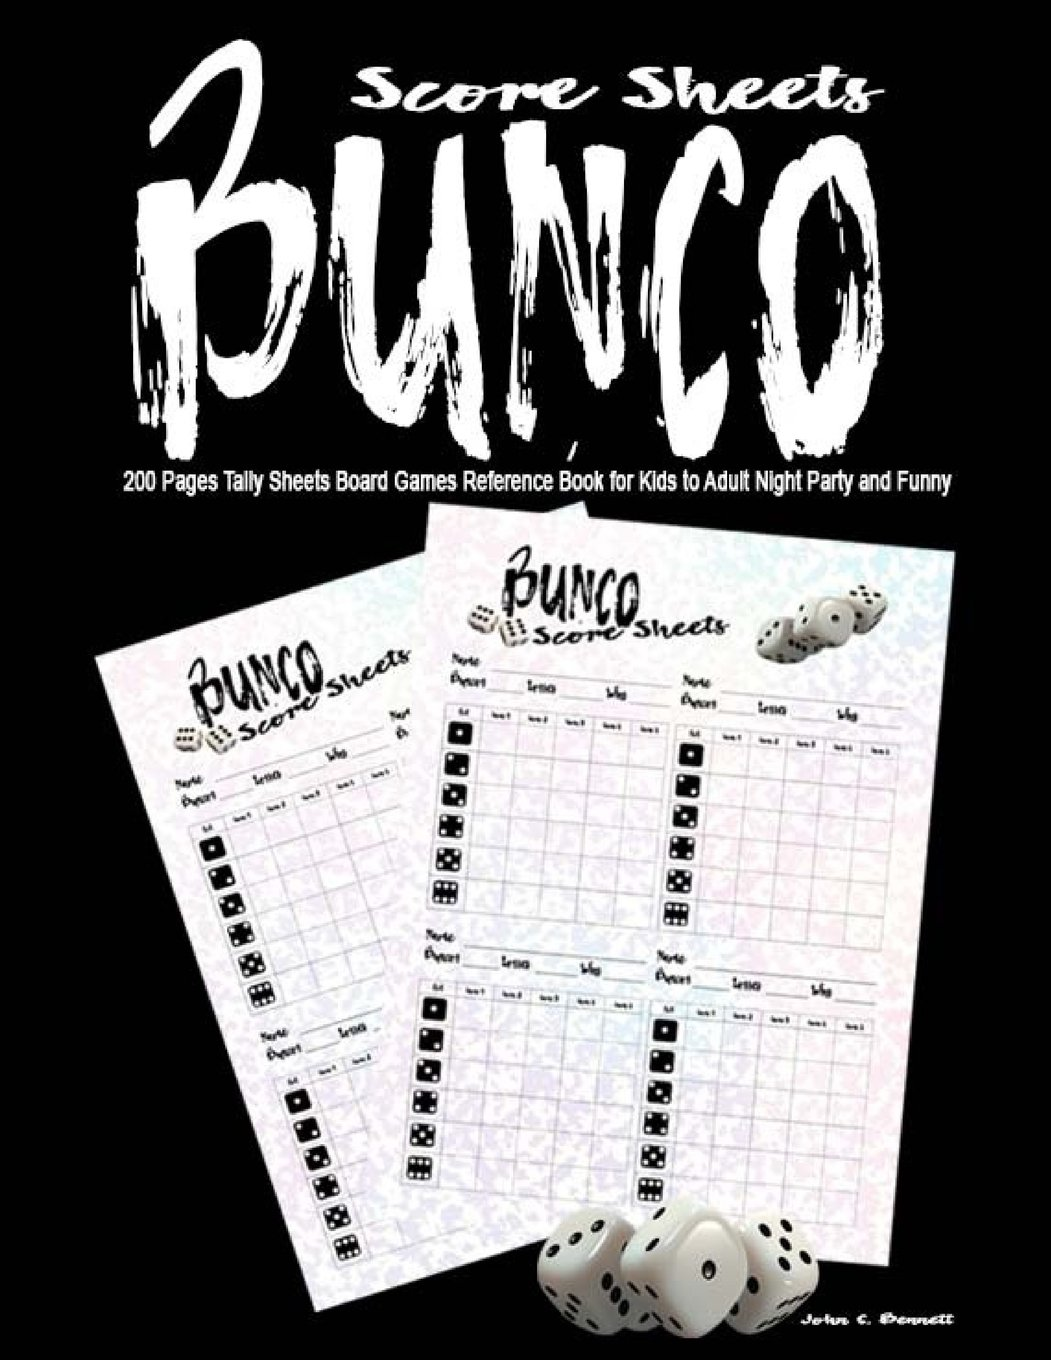 photograph relating to Cute Bunco Score Sheets Printable identified as Bunco Ranking Sheets: 200 Webpages Tally Sheets Board Online games